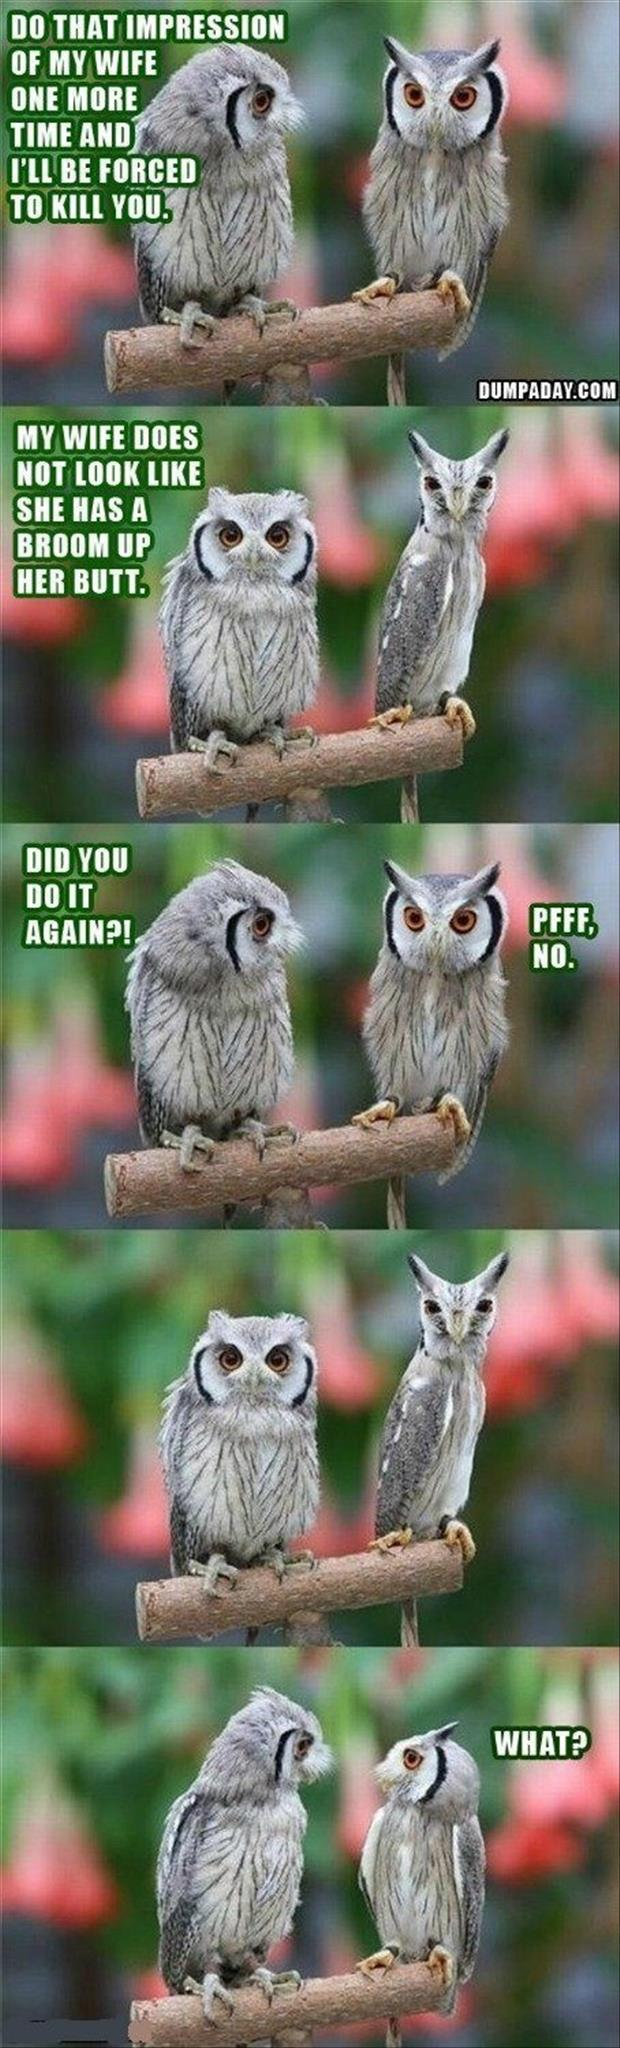 wow the owls funny pictures